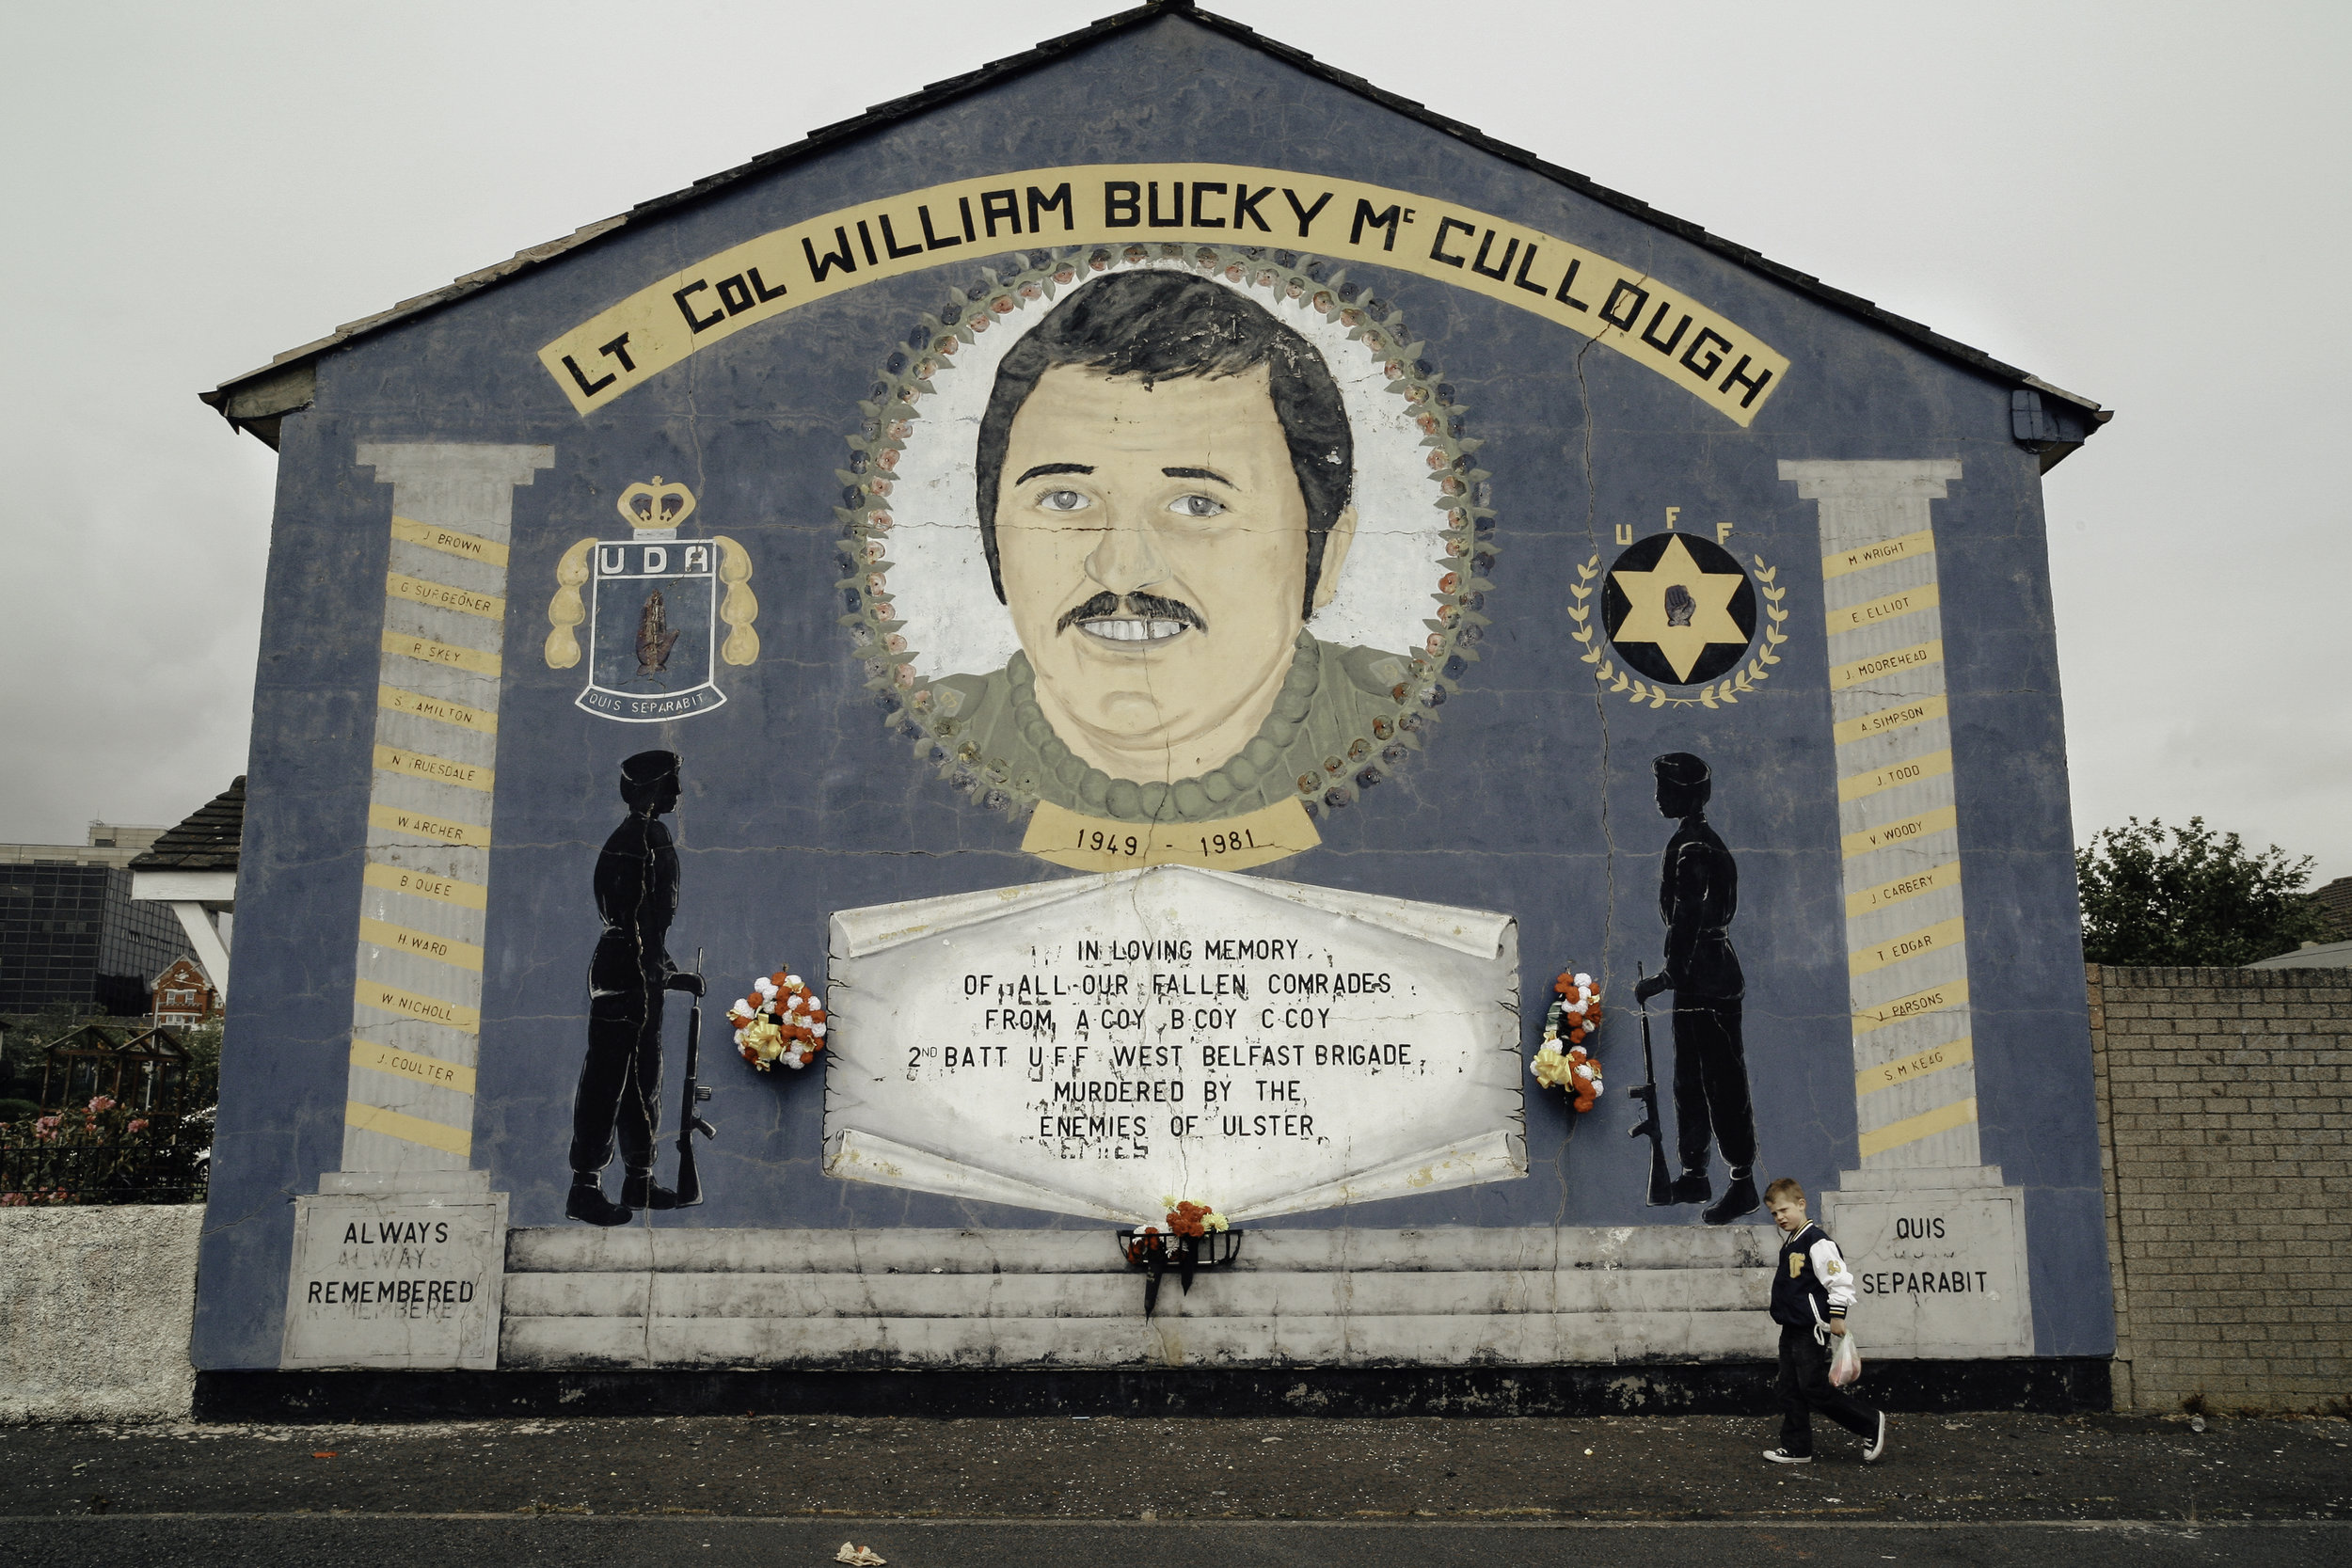 Alan McCullough (July 1981 – 28 May 2003) was a leading Northern Irish loyalist and a member of the Ulster Defence Association (UDA). He served as the organization's military commander for the West Belfast Brigade's notorious C Company which was then headed by Johnny Adair.  McCullough was suspected of having organized the killing of South East Antrim brigadier John Gregg in February 2003. Gregg was a rival of Adair's who enjoyed popularity among loyalists on account of his attempted assassination of Sinn Féin president Gerry Adams in 1984. The killing provoked outrage amongst the other UDA leaders and as a result of Adair and his associates, including McCullough, were forced to leave Northern Ireland. McCullough returned to Belfast in April 2003 but a month later he disappeared from his home in the company of two men. On 5 June his body was found in a shallow grave in Mallusk. The UDA claimed responsibility for the killing using their cover name Ulster Freedom Fighters (UFF).